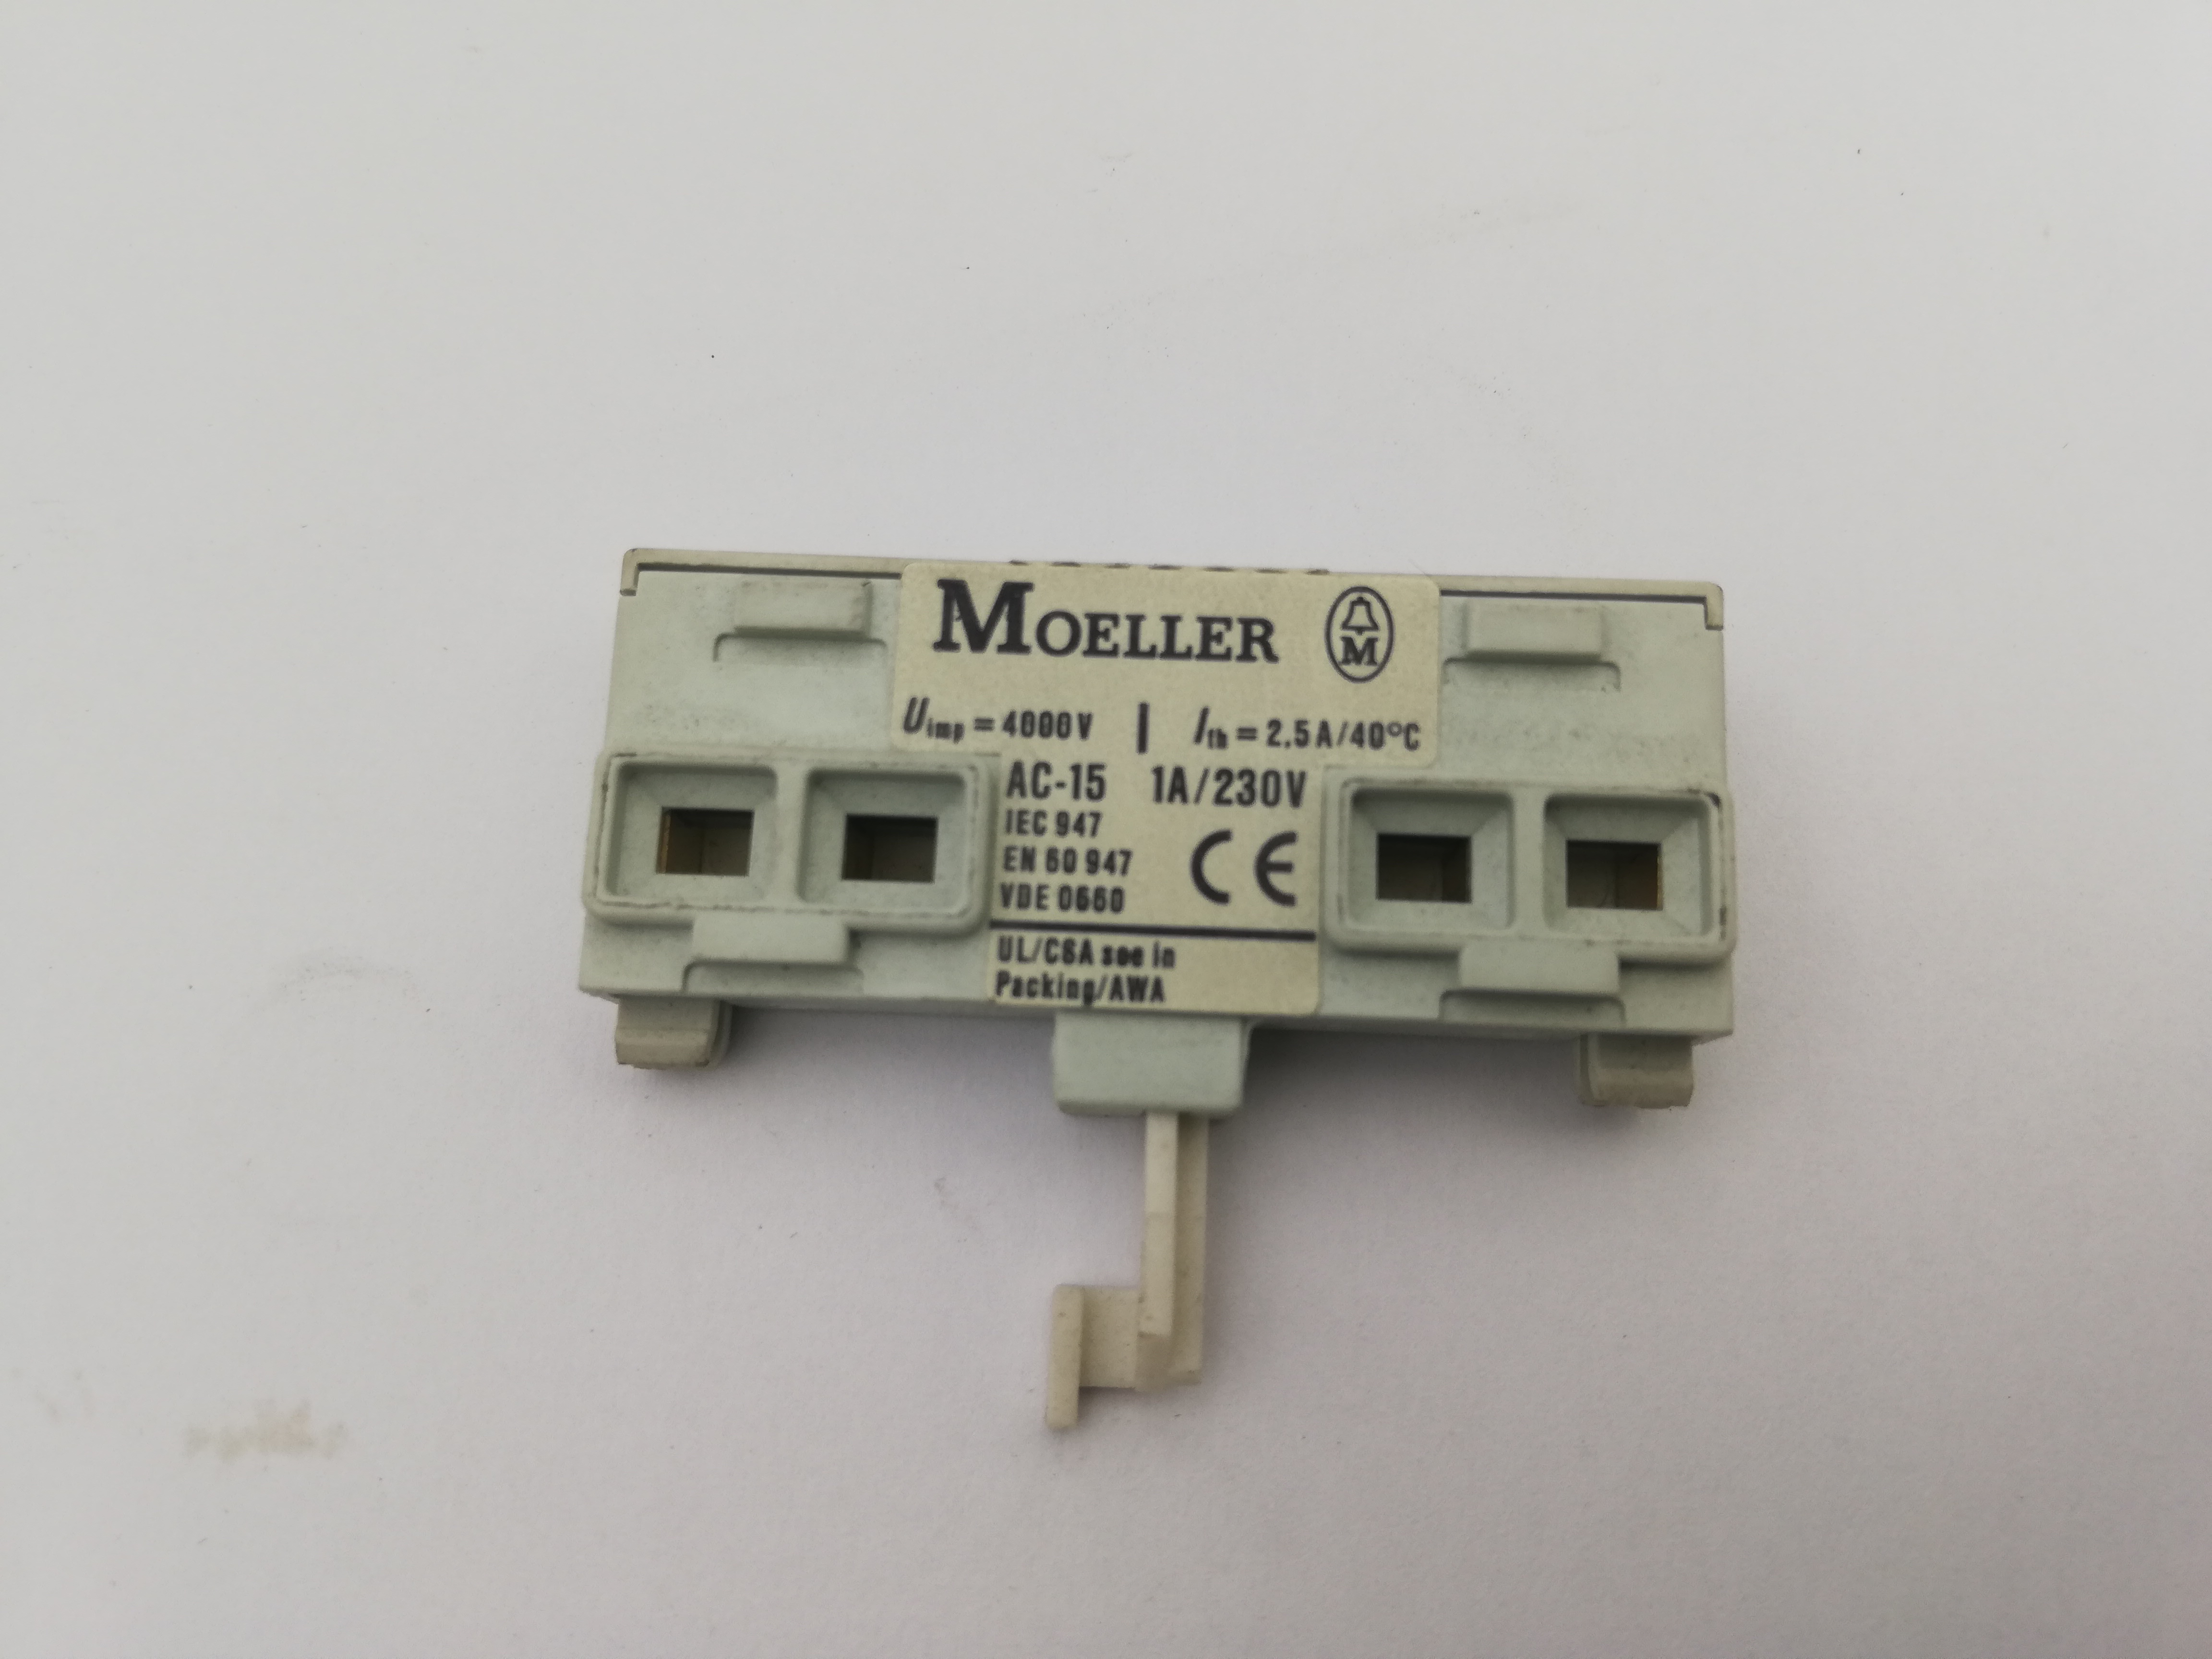 Aux Contact For P/N:8475 For Mini Mill 560 Ref: 082882